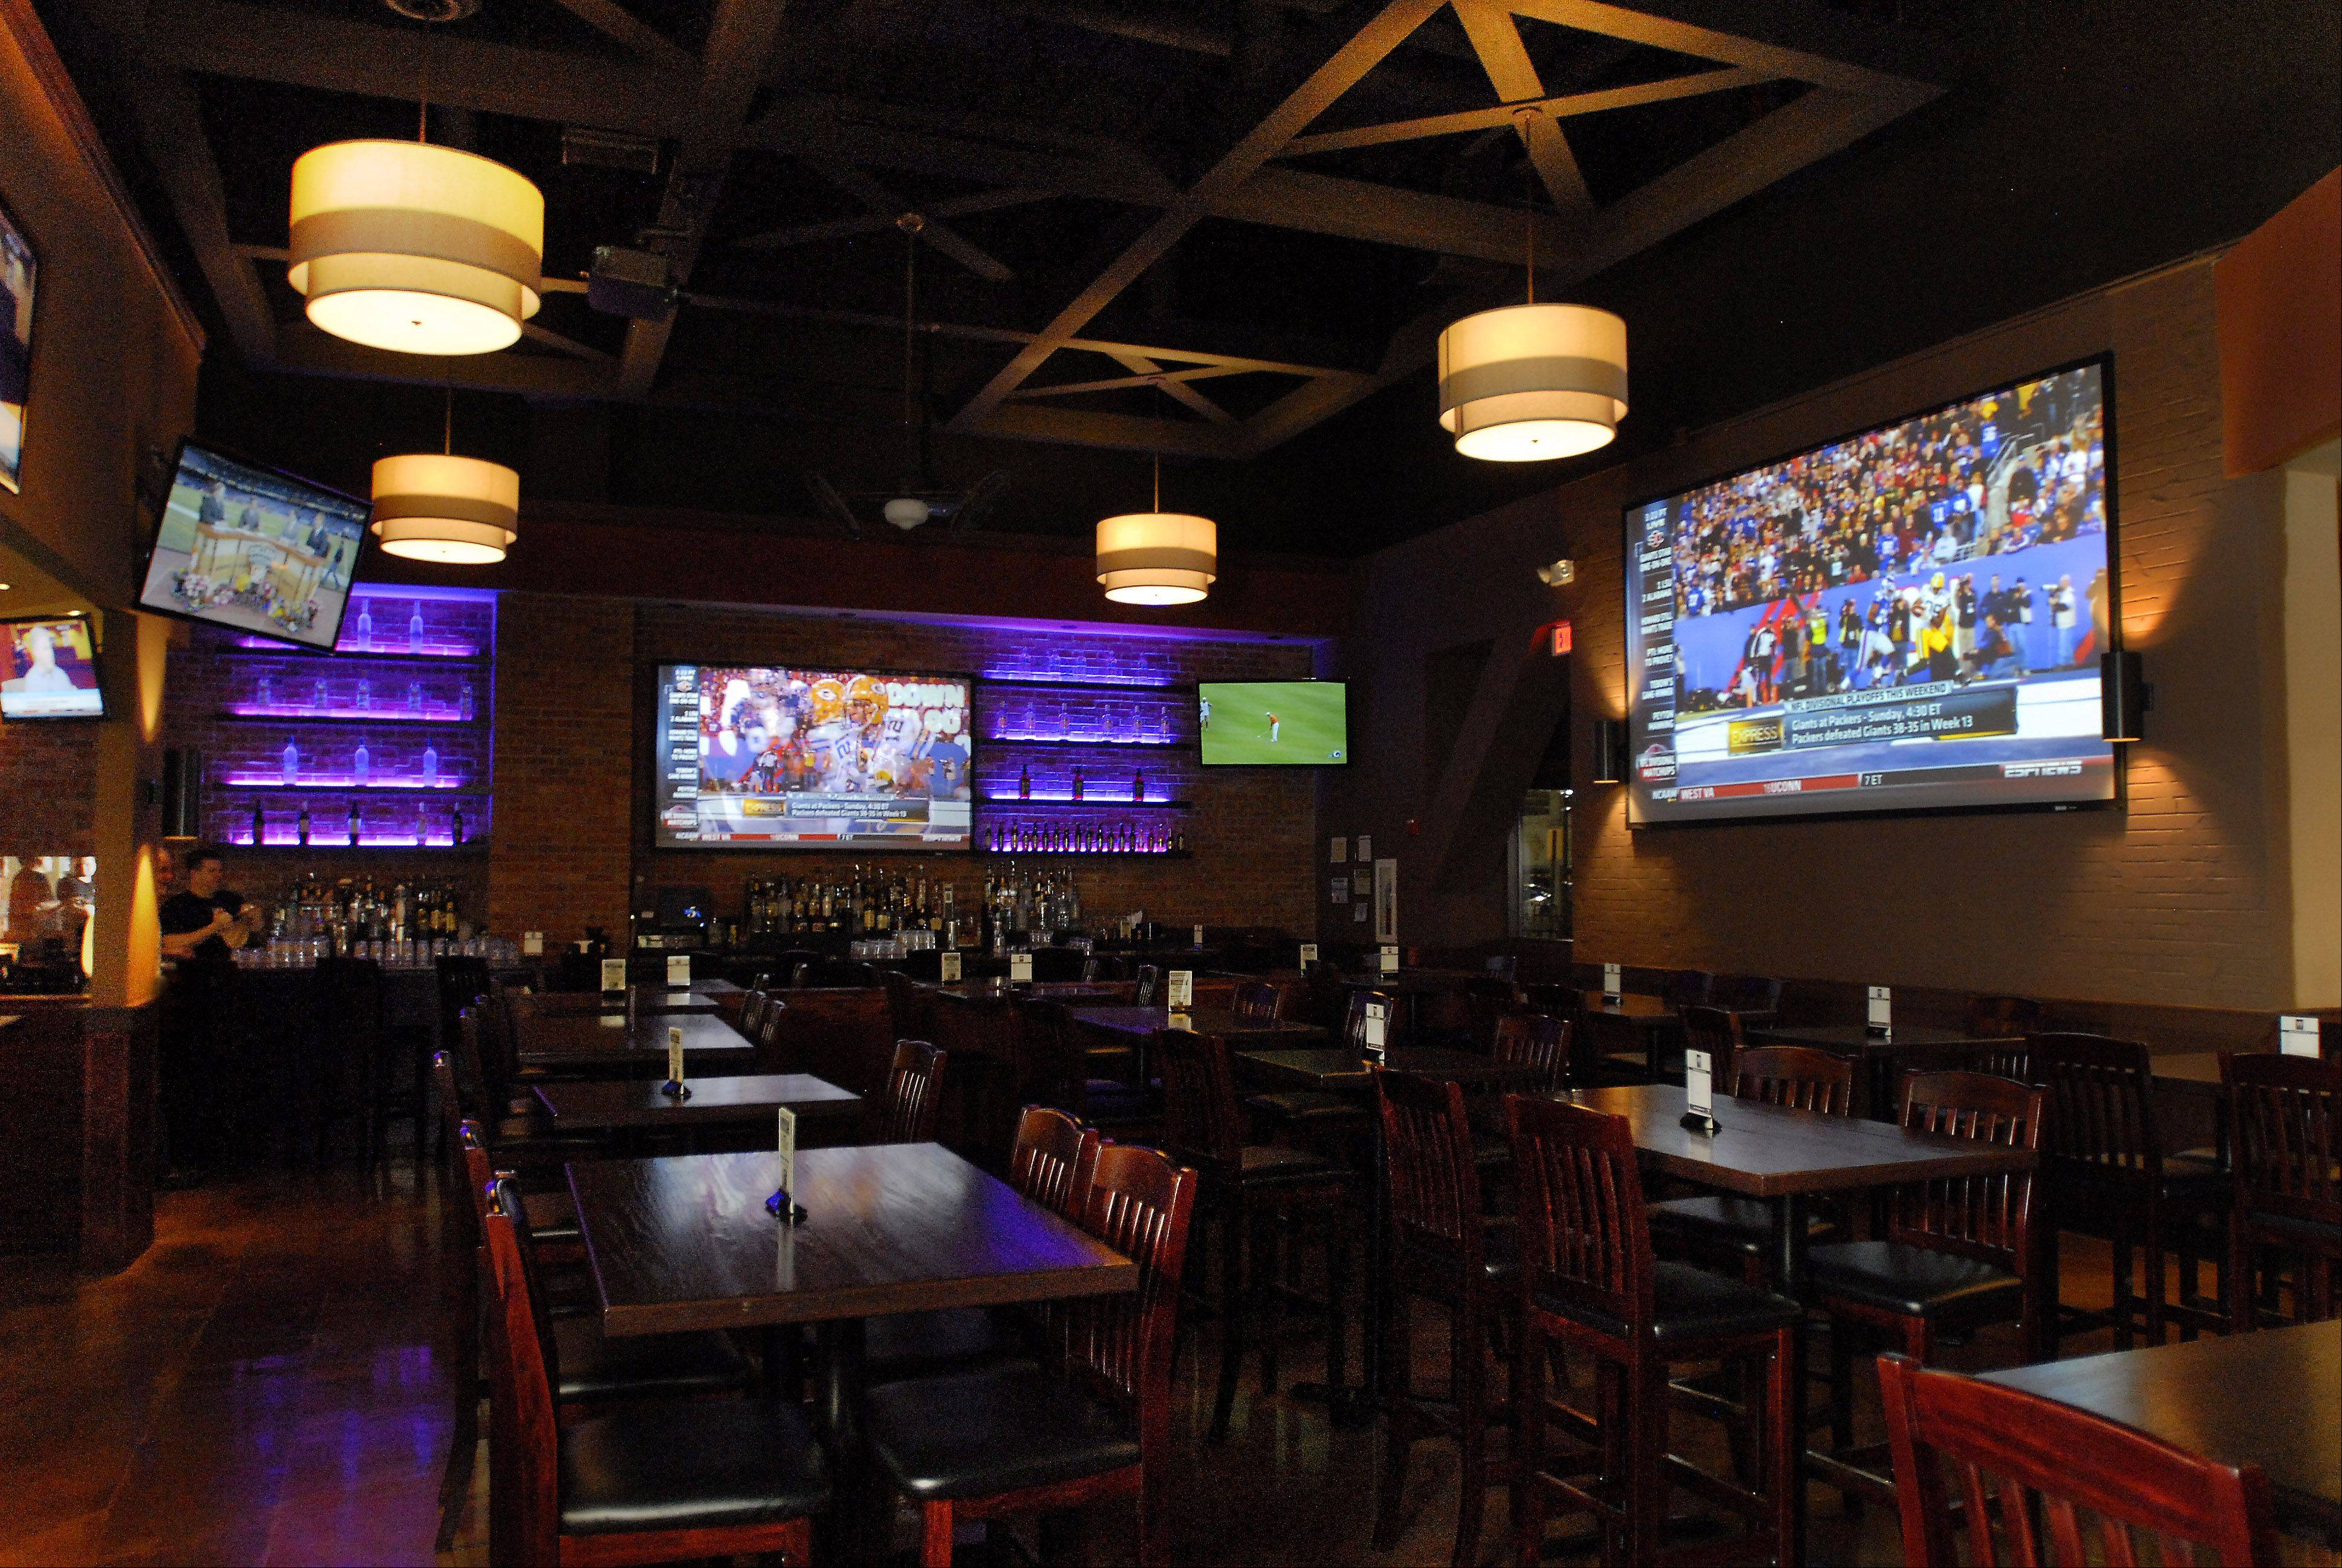 Massive screens put you close to the Super Bowl action at Wickets Bar and Grill in Schaumburg.